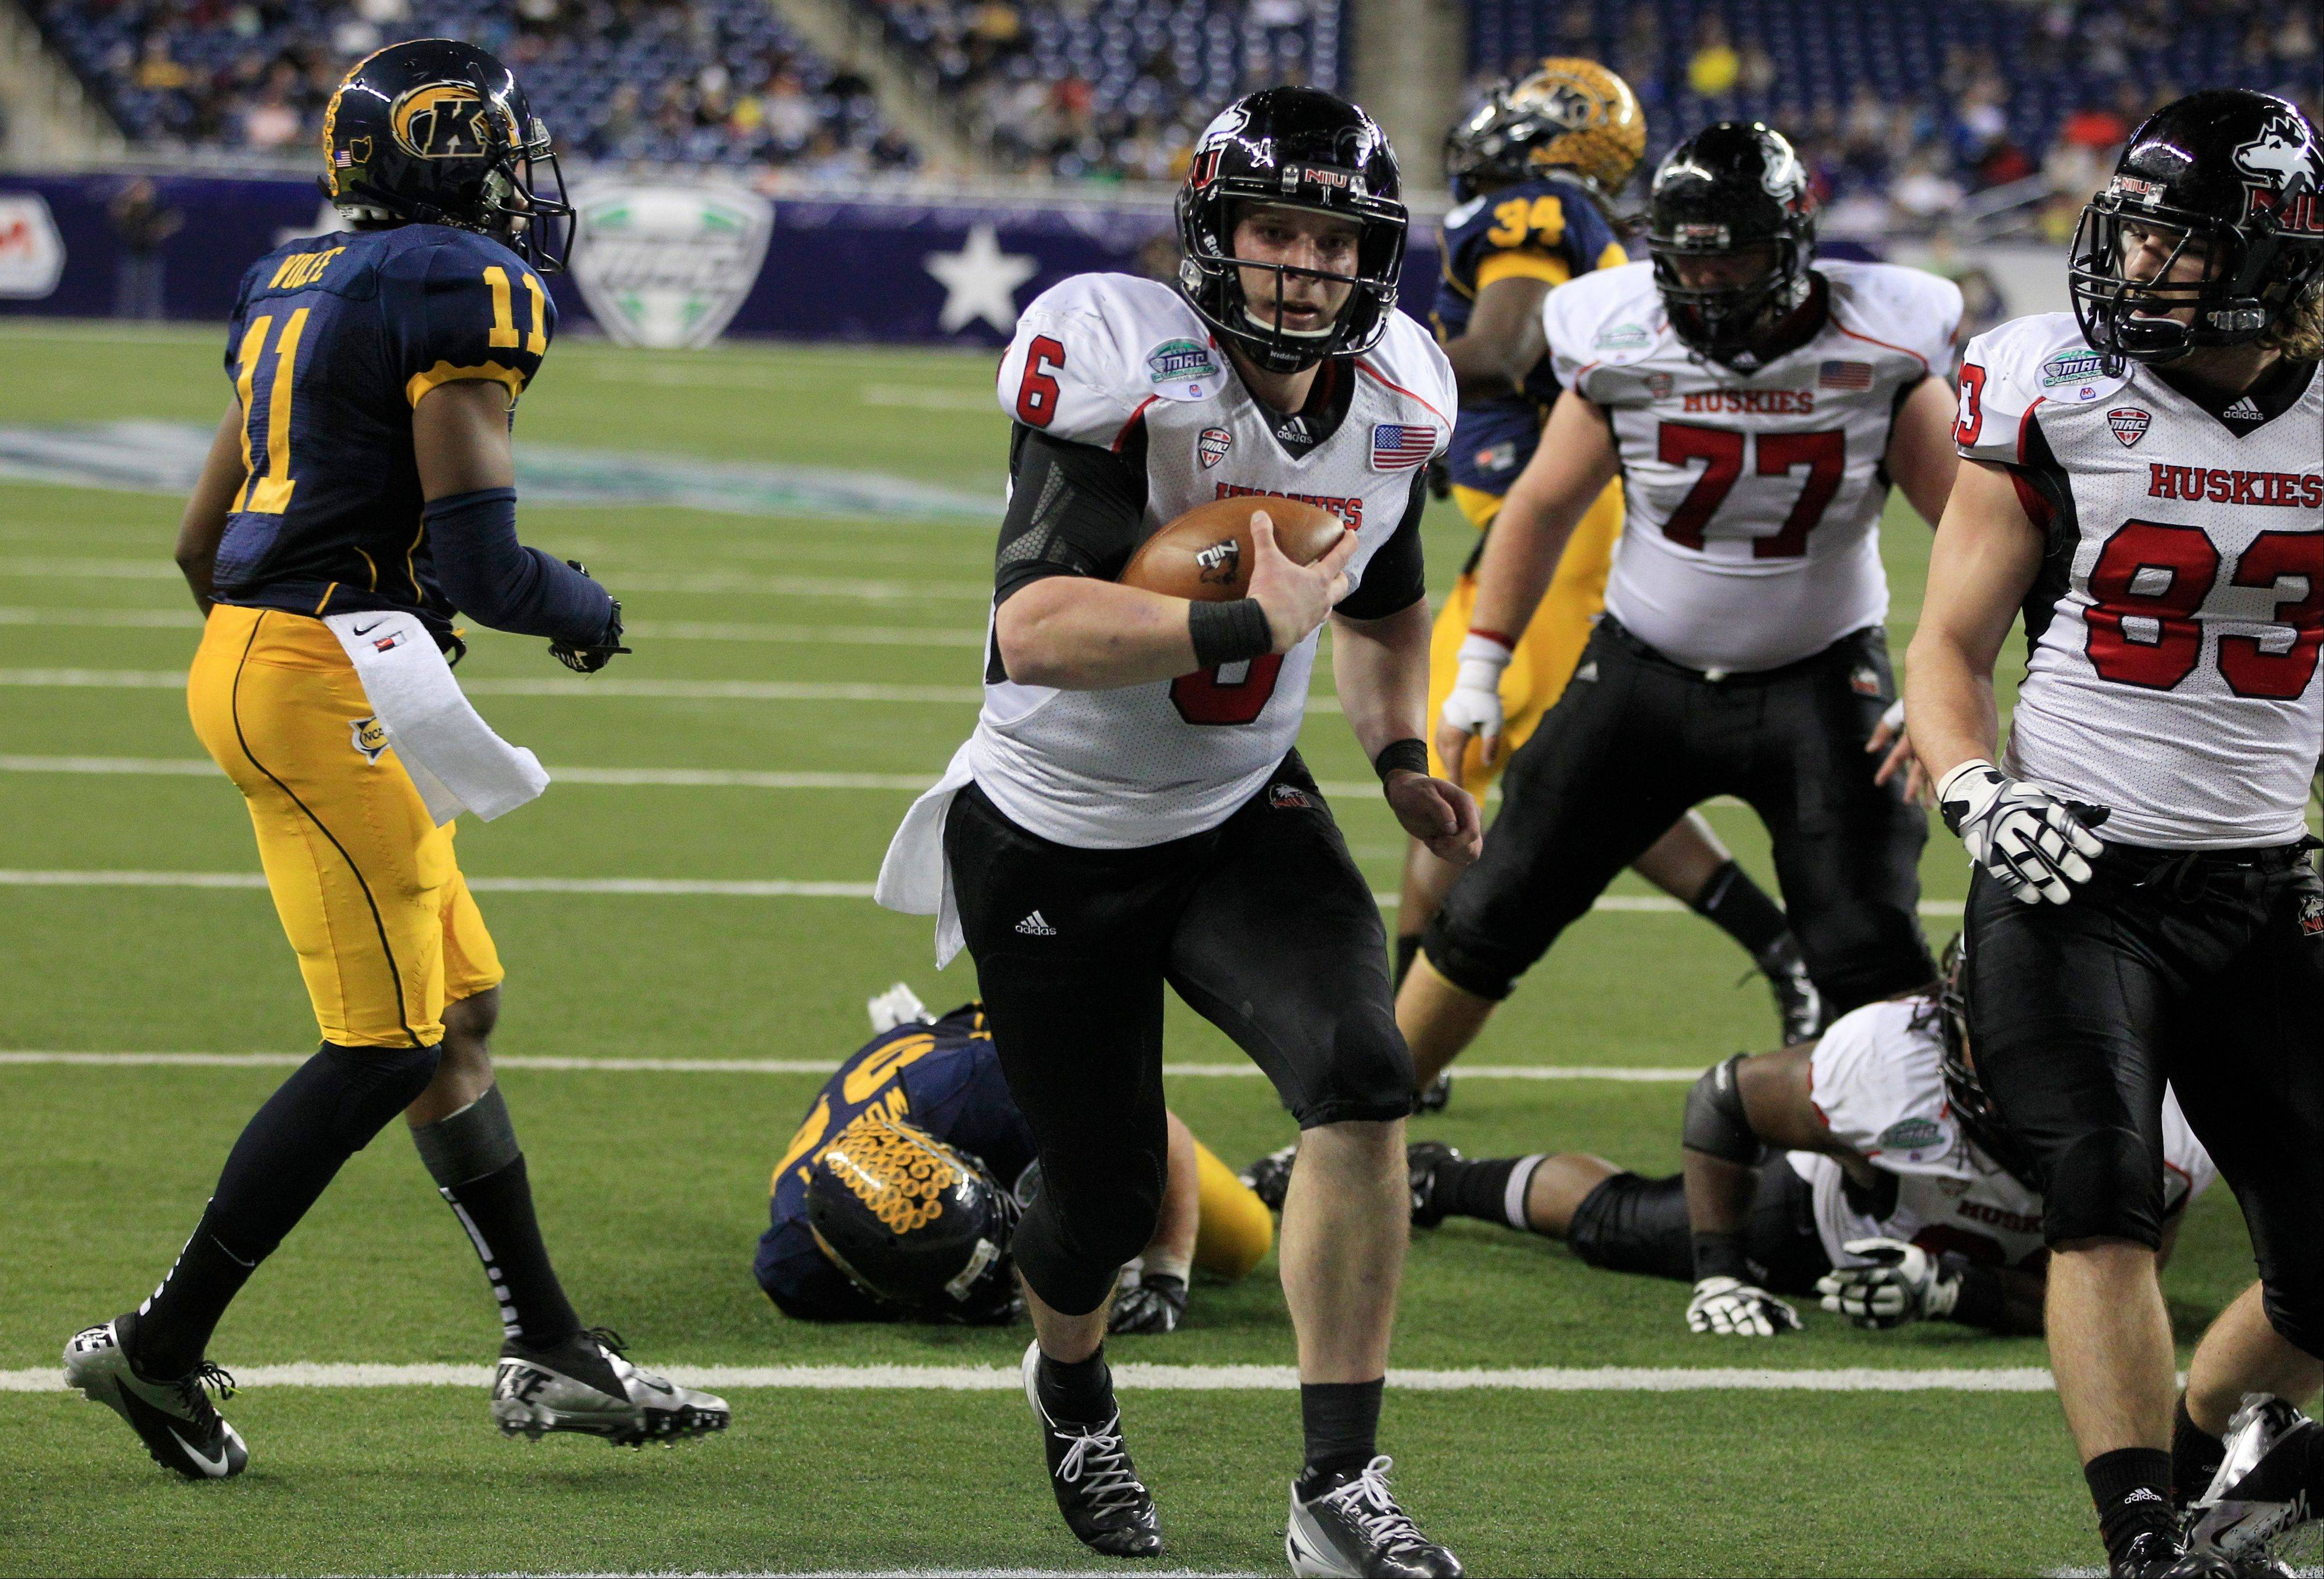 Northern Illinois quarterback Jordan Lynch (6) scores on a 1-yard run Friday during the third quarter.